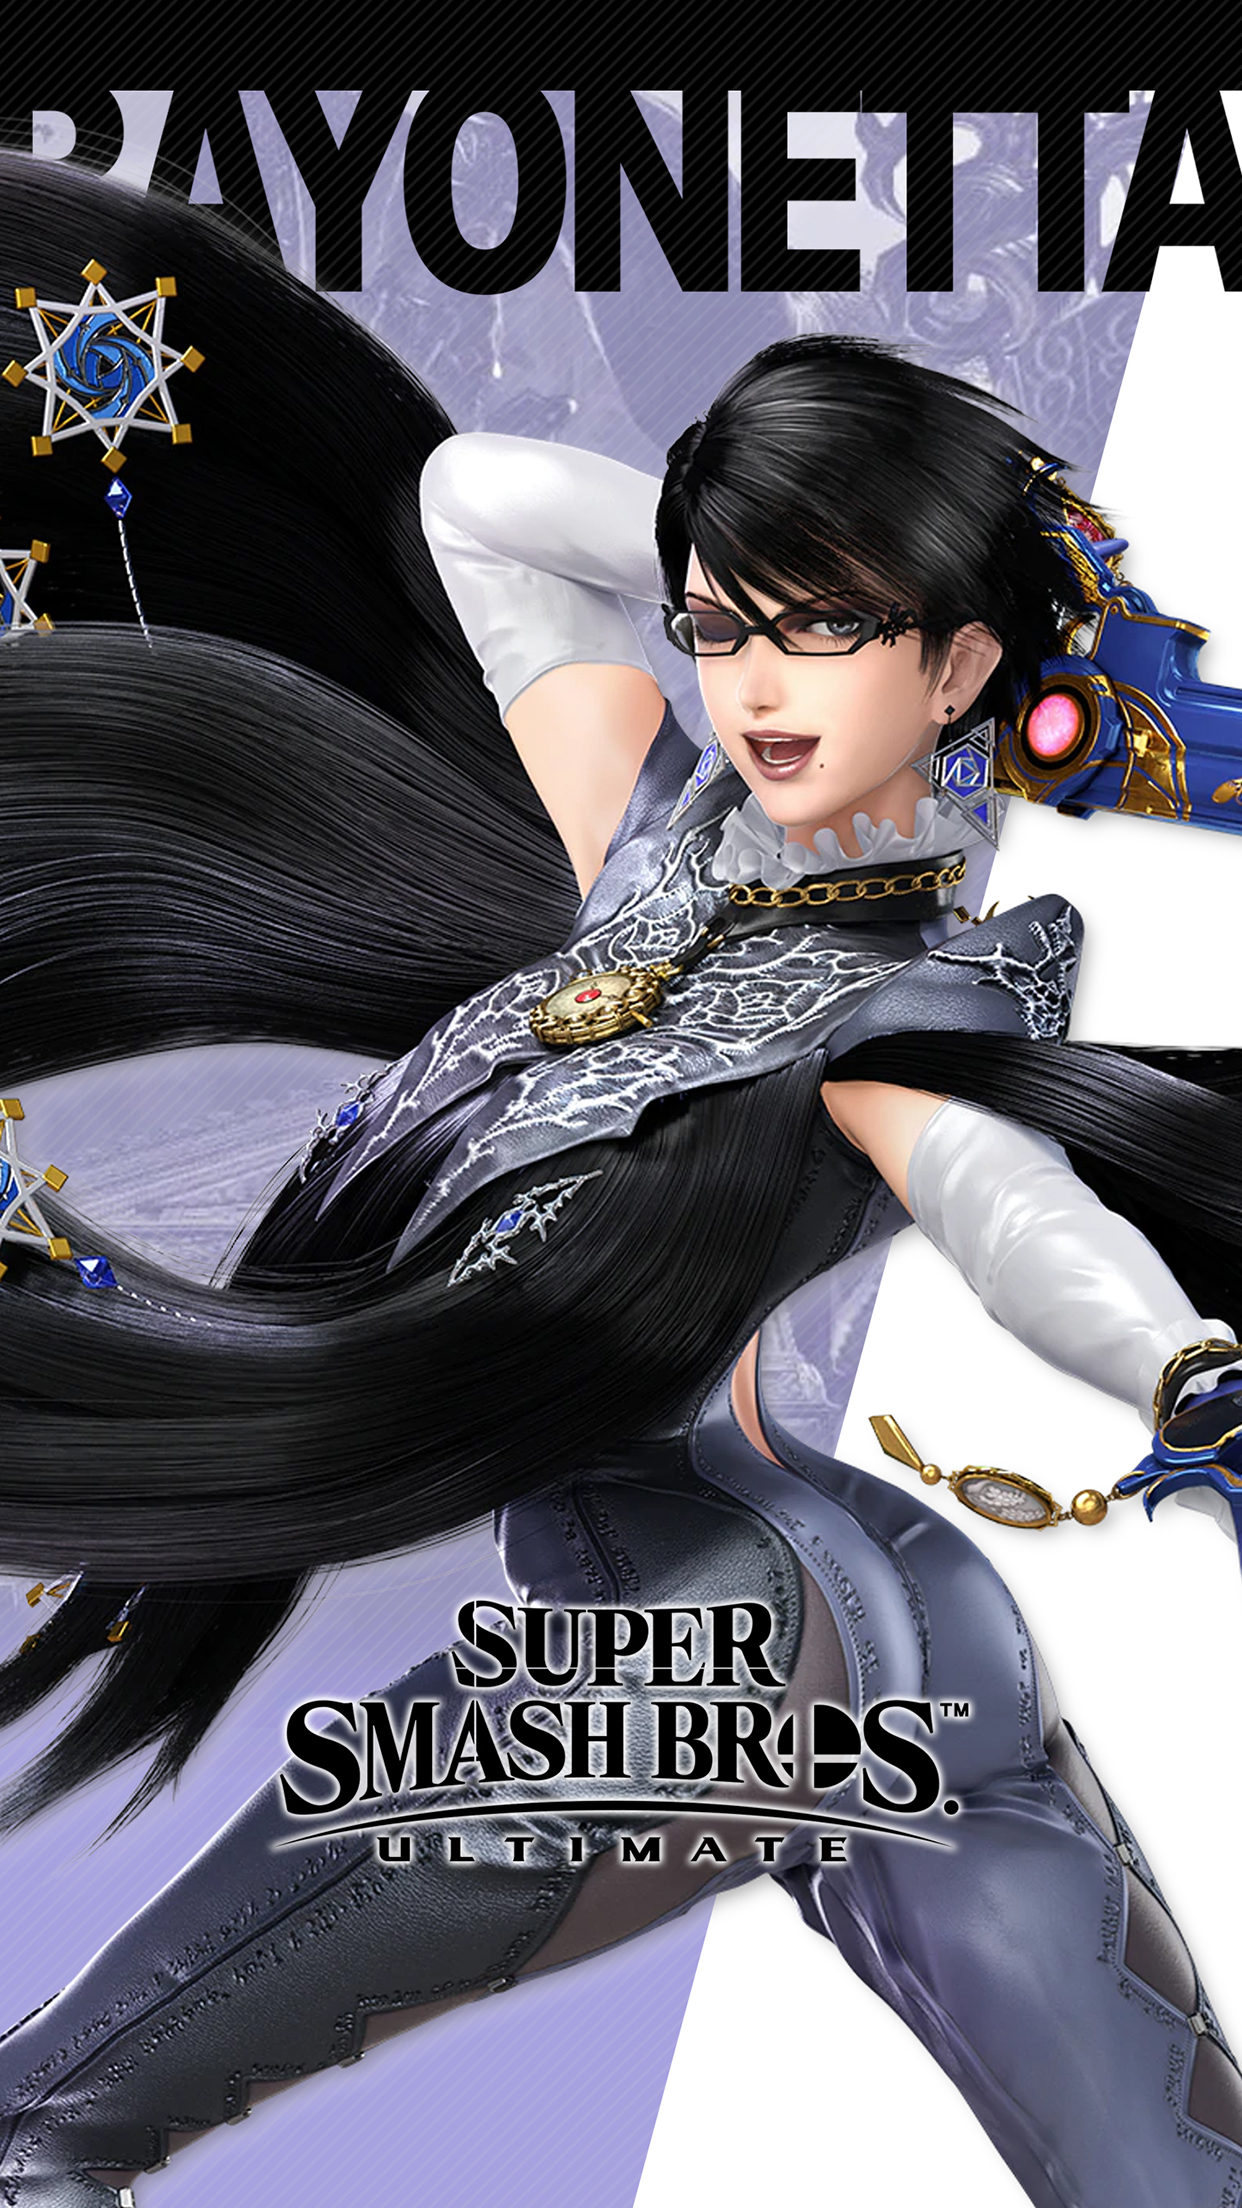 Iphone X Wallpaper For Note 8 Super Smash Bros Ultimate Bayonetta Wallpapers Cat With